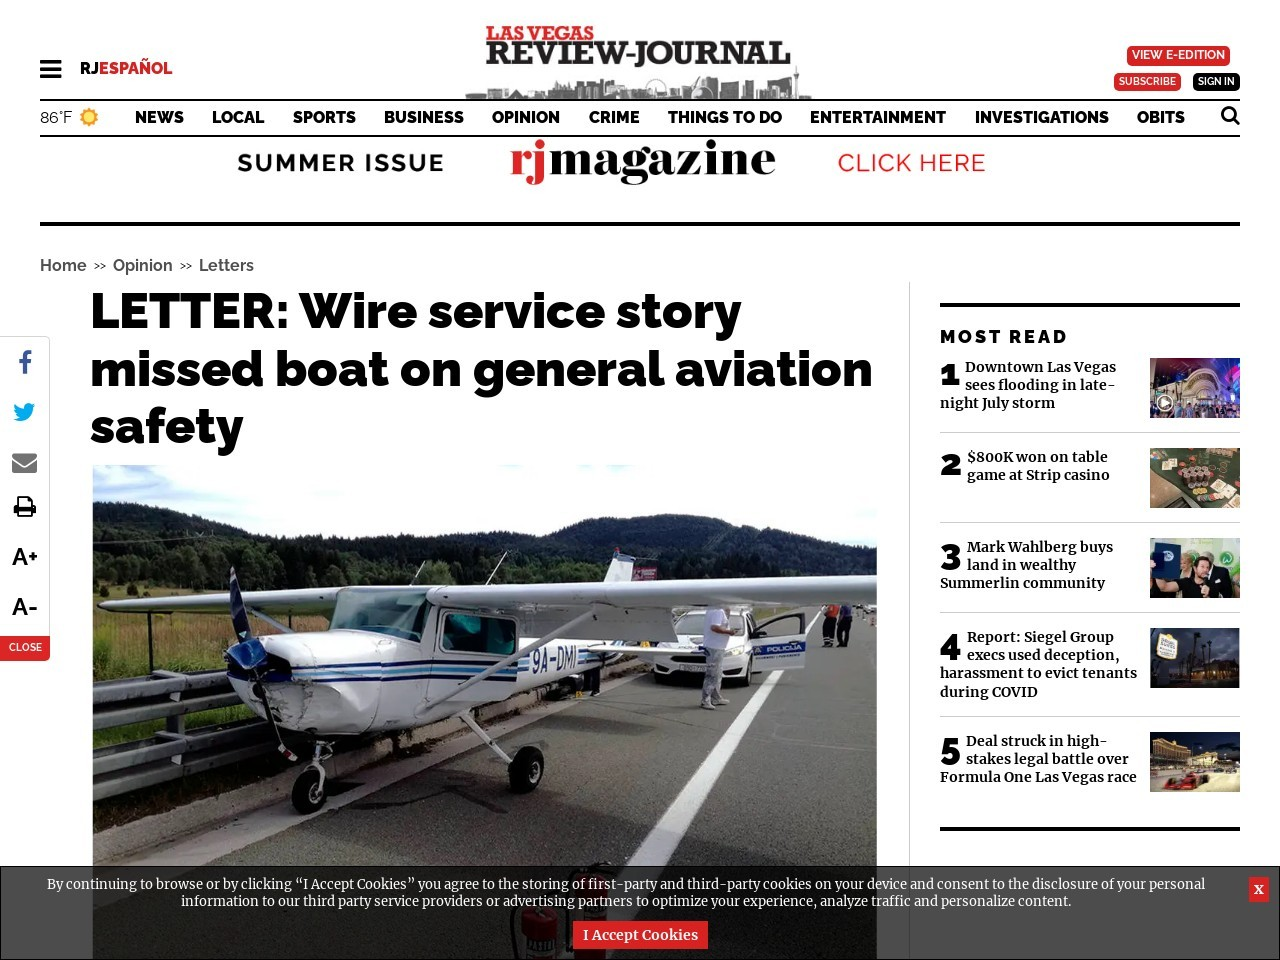 LETTER: Wire service story missed boat on general aviation safety